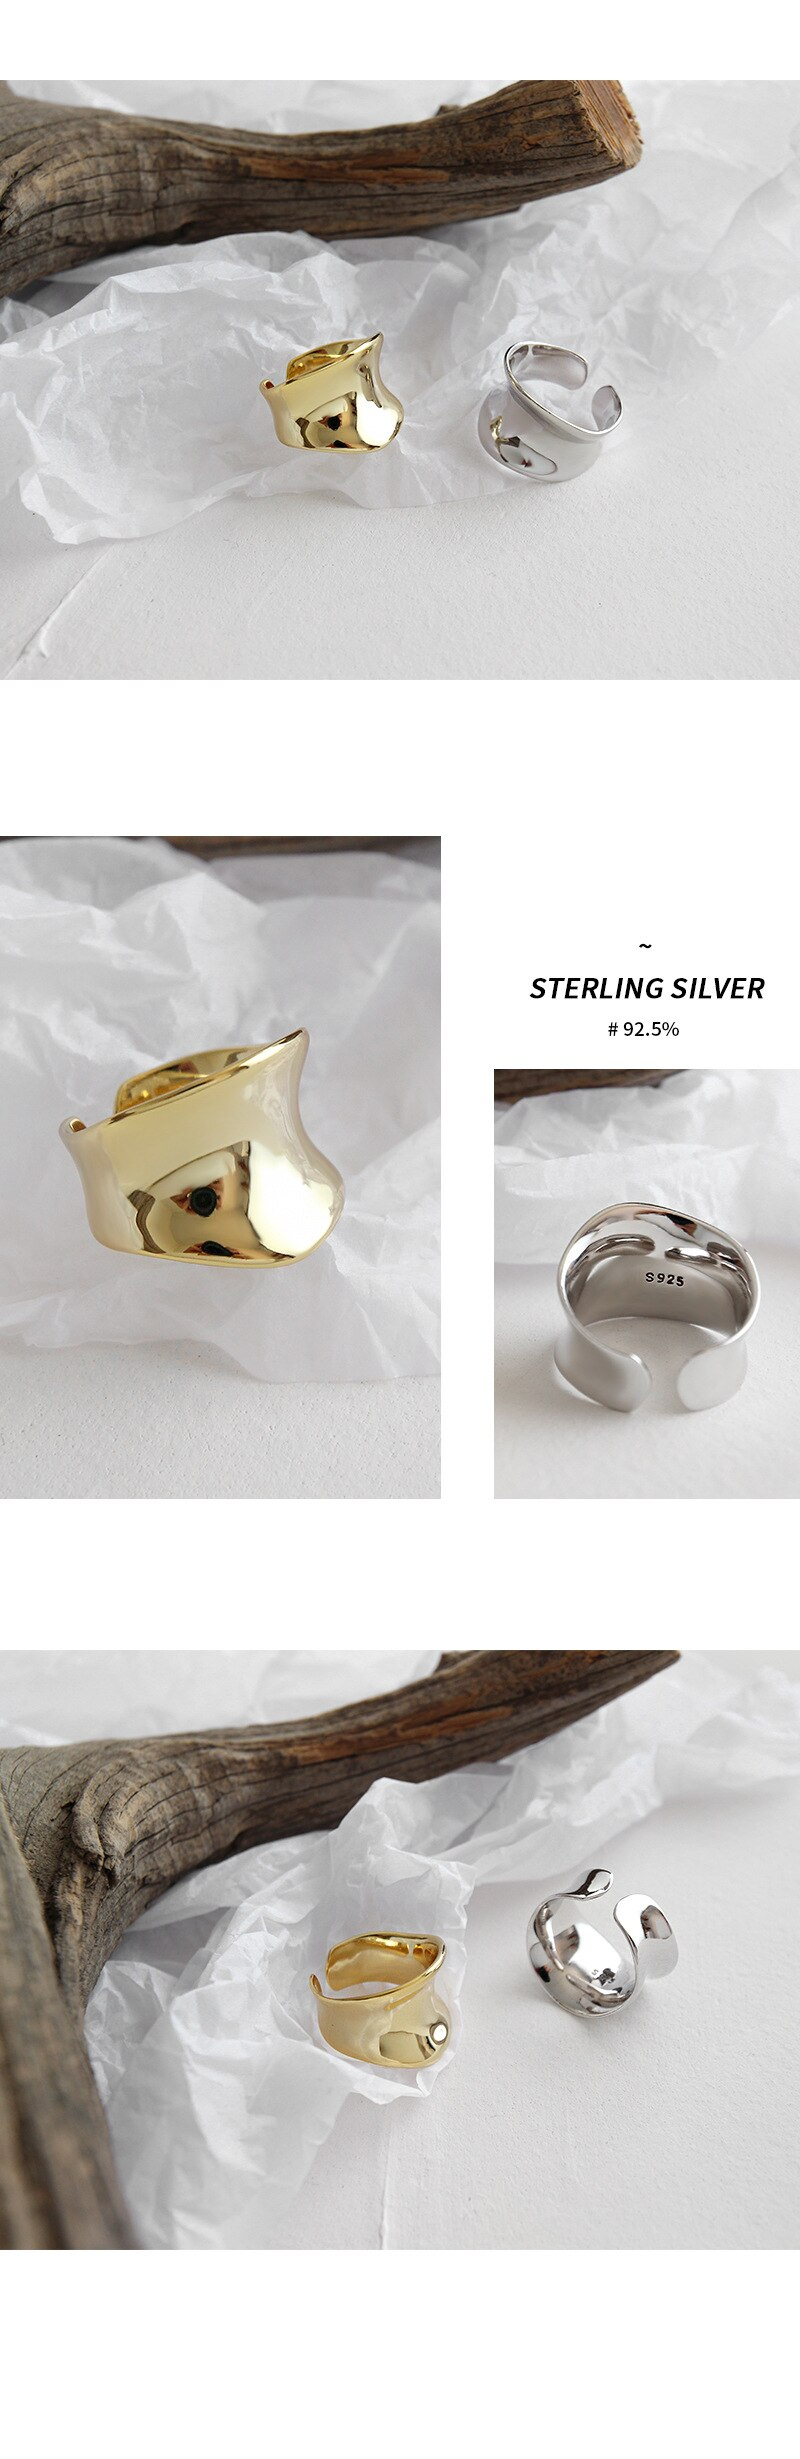 Kinel Fashion Unique Design 925 Sterling Silver Rings Wide Concave Surface INS Style Irregular Korean Silver Ring 925 Jewelry